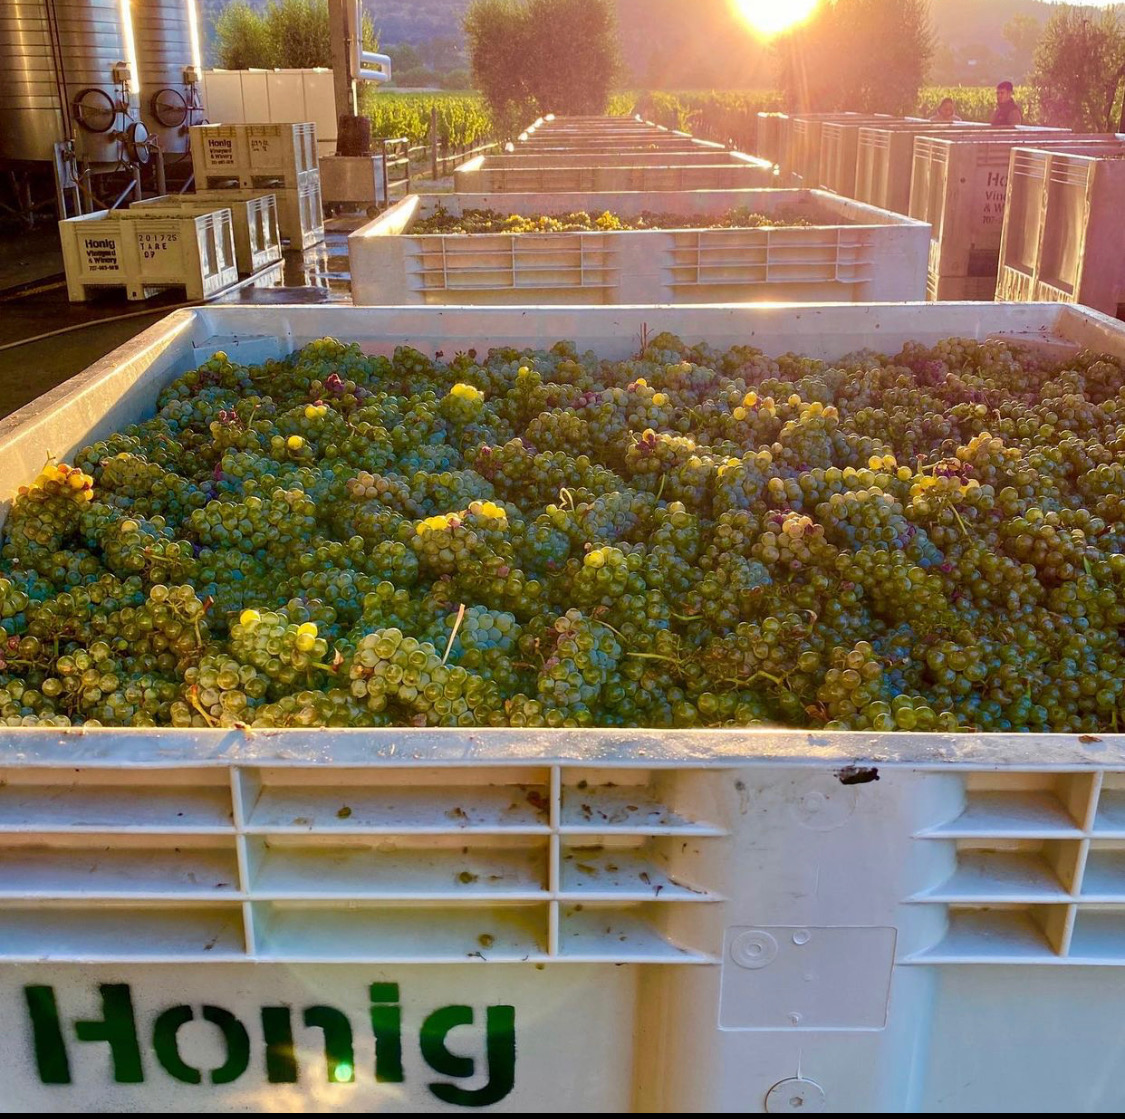 2021 Harvest is officially underway!